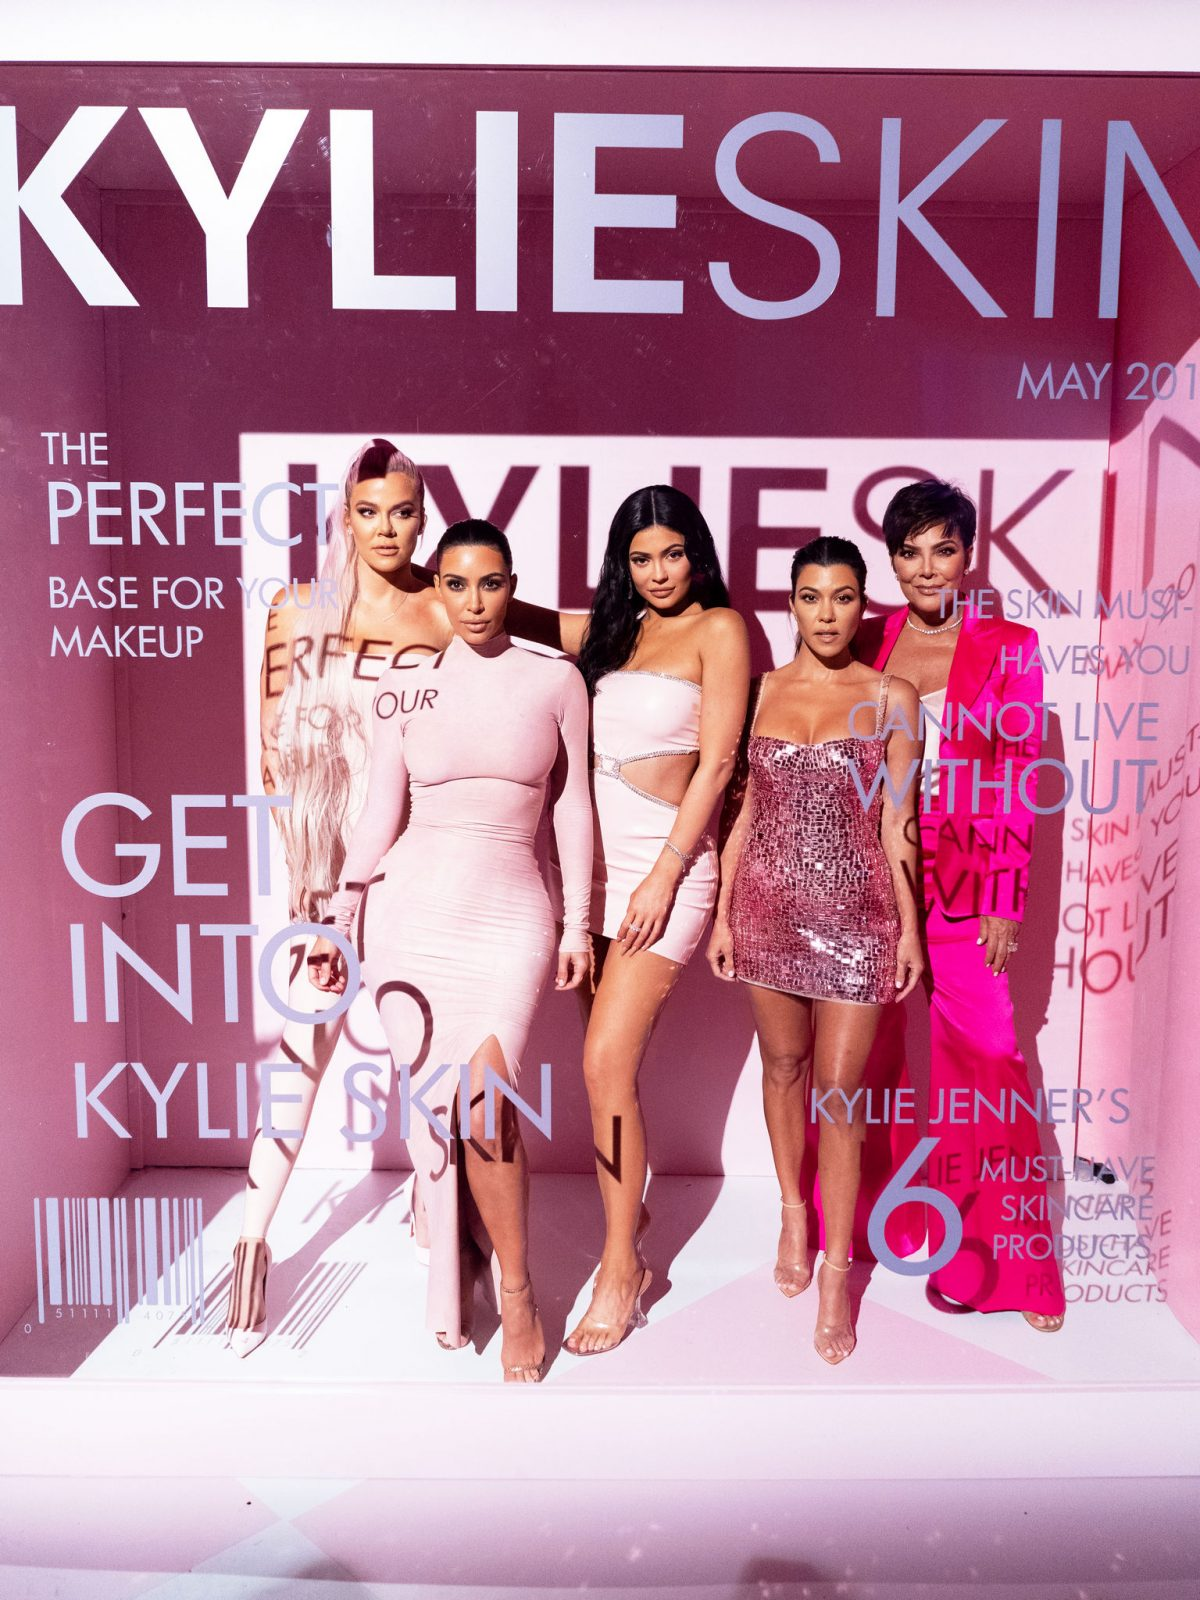 kylieskin-launch-160.jpg